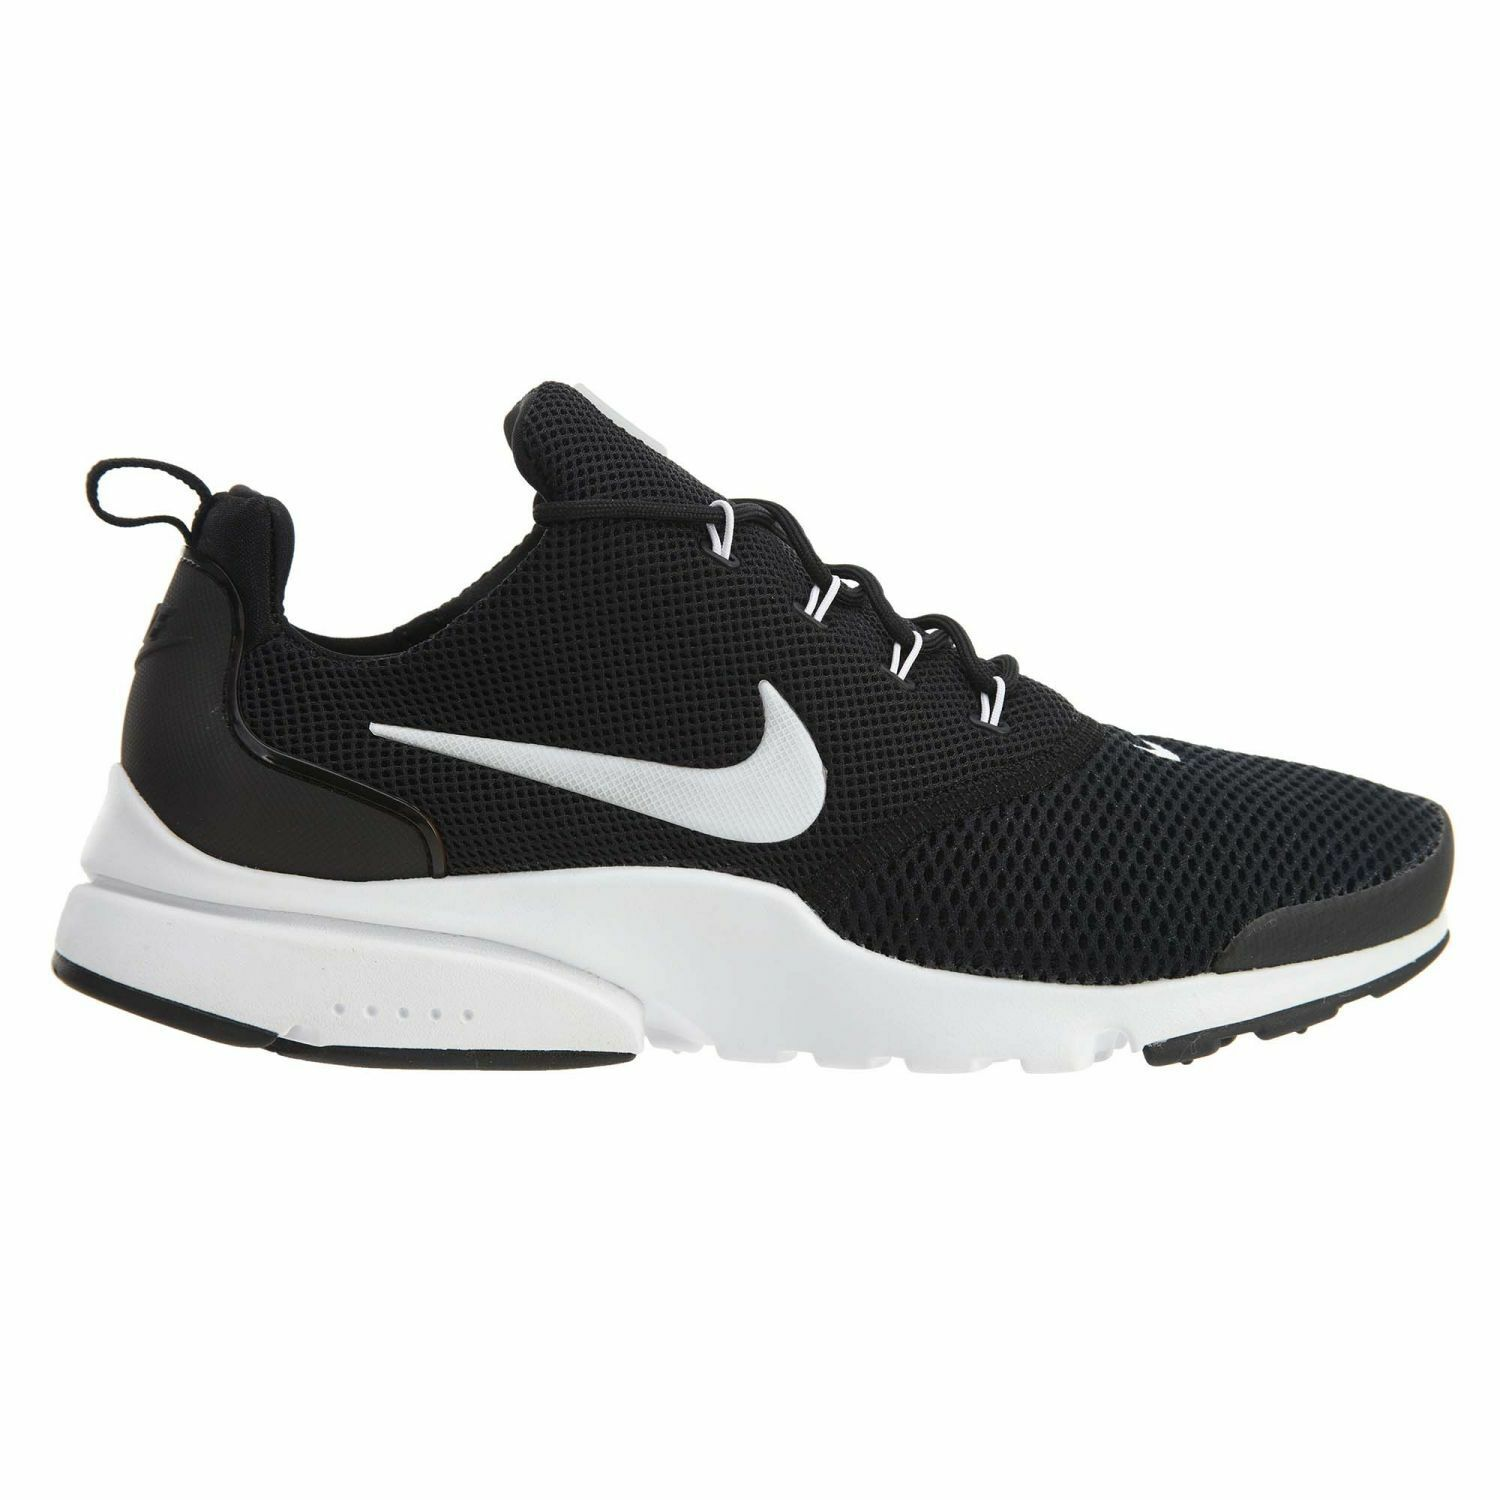 Nike Presto Fly Mens 908019-002 Black White Flyknit Running Shoes Size 9.5